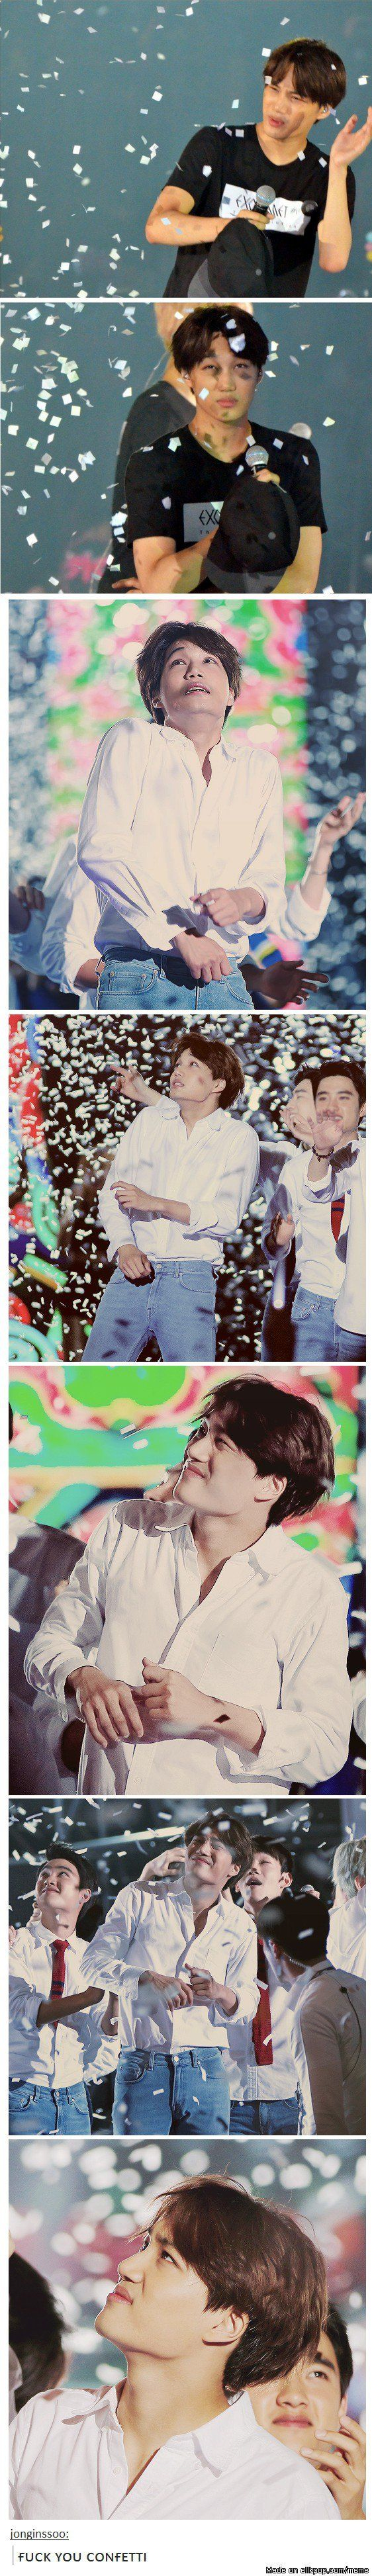 Kai vs. confetti XD. I love this! This is the complete opposite of Chanyeol, who absolutely loves confetti.